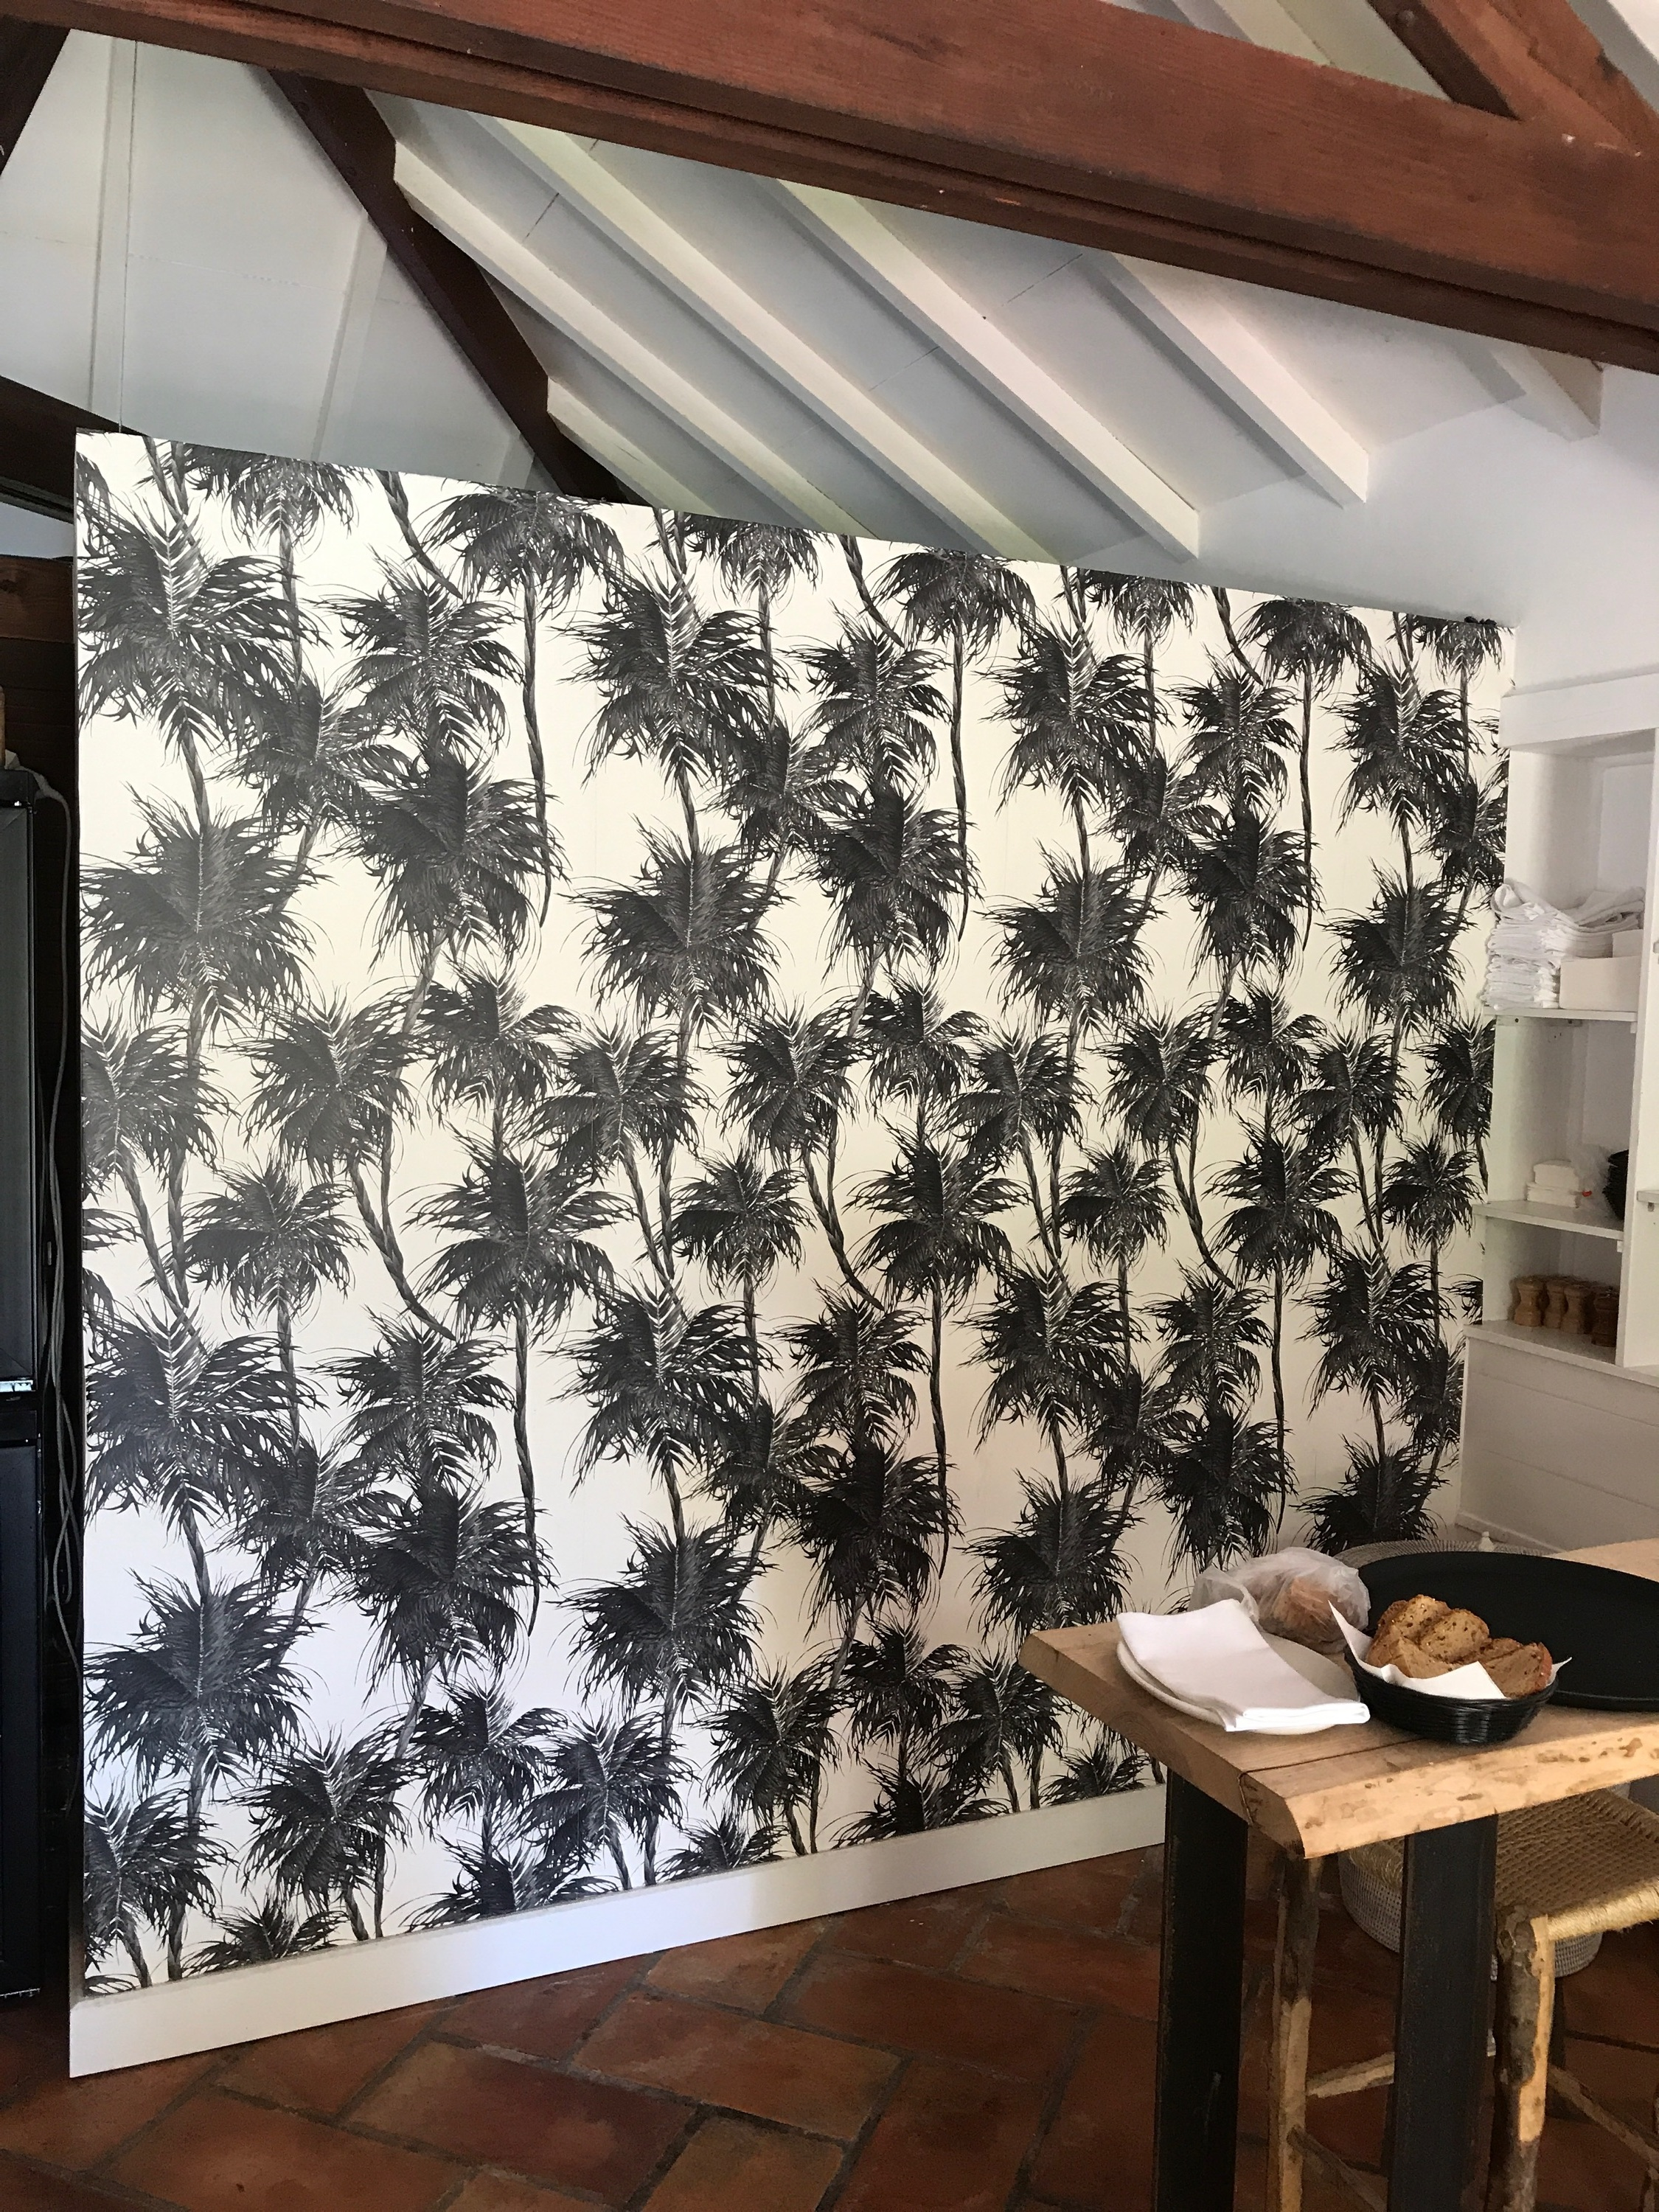 The+Tropical_CandiceKayeDesign.JPG